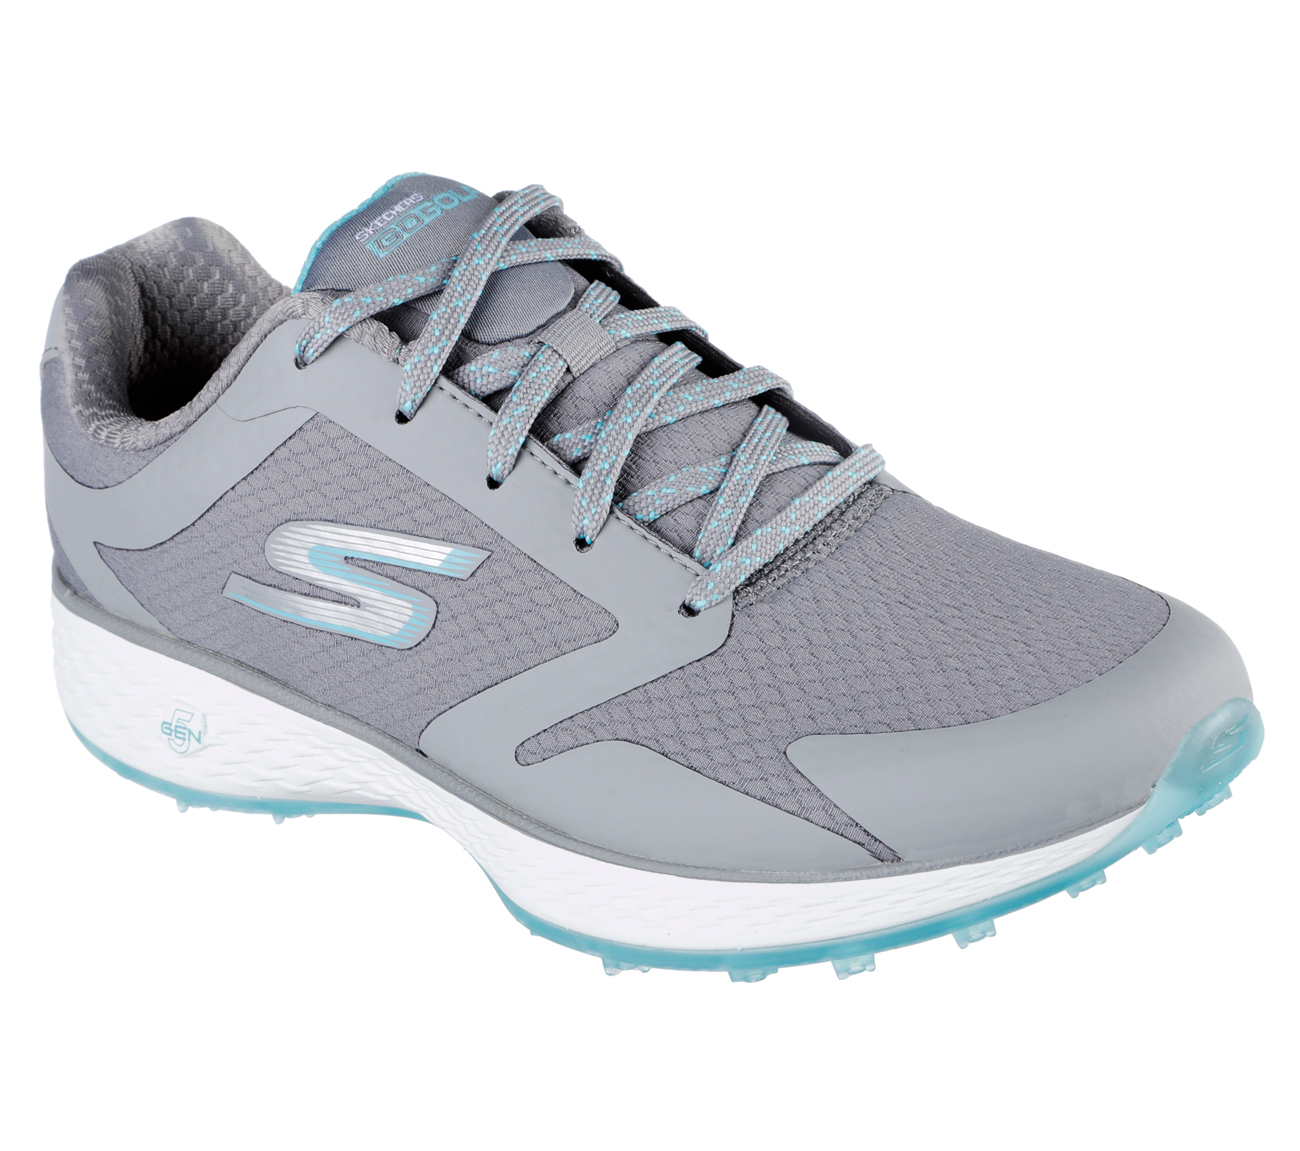 Sketchers Women's Go Golf Birdie Golf Shoe - Grey